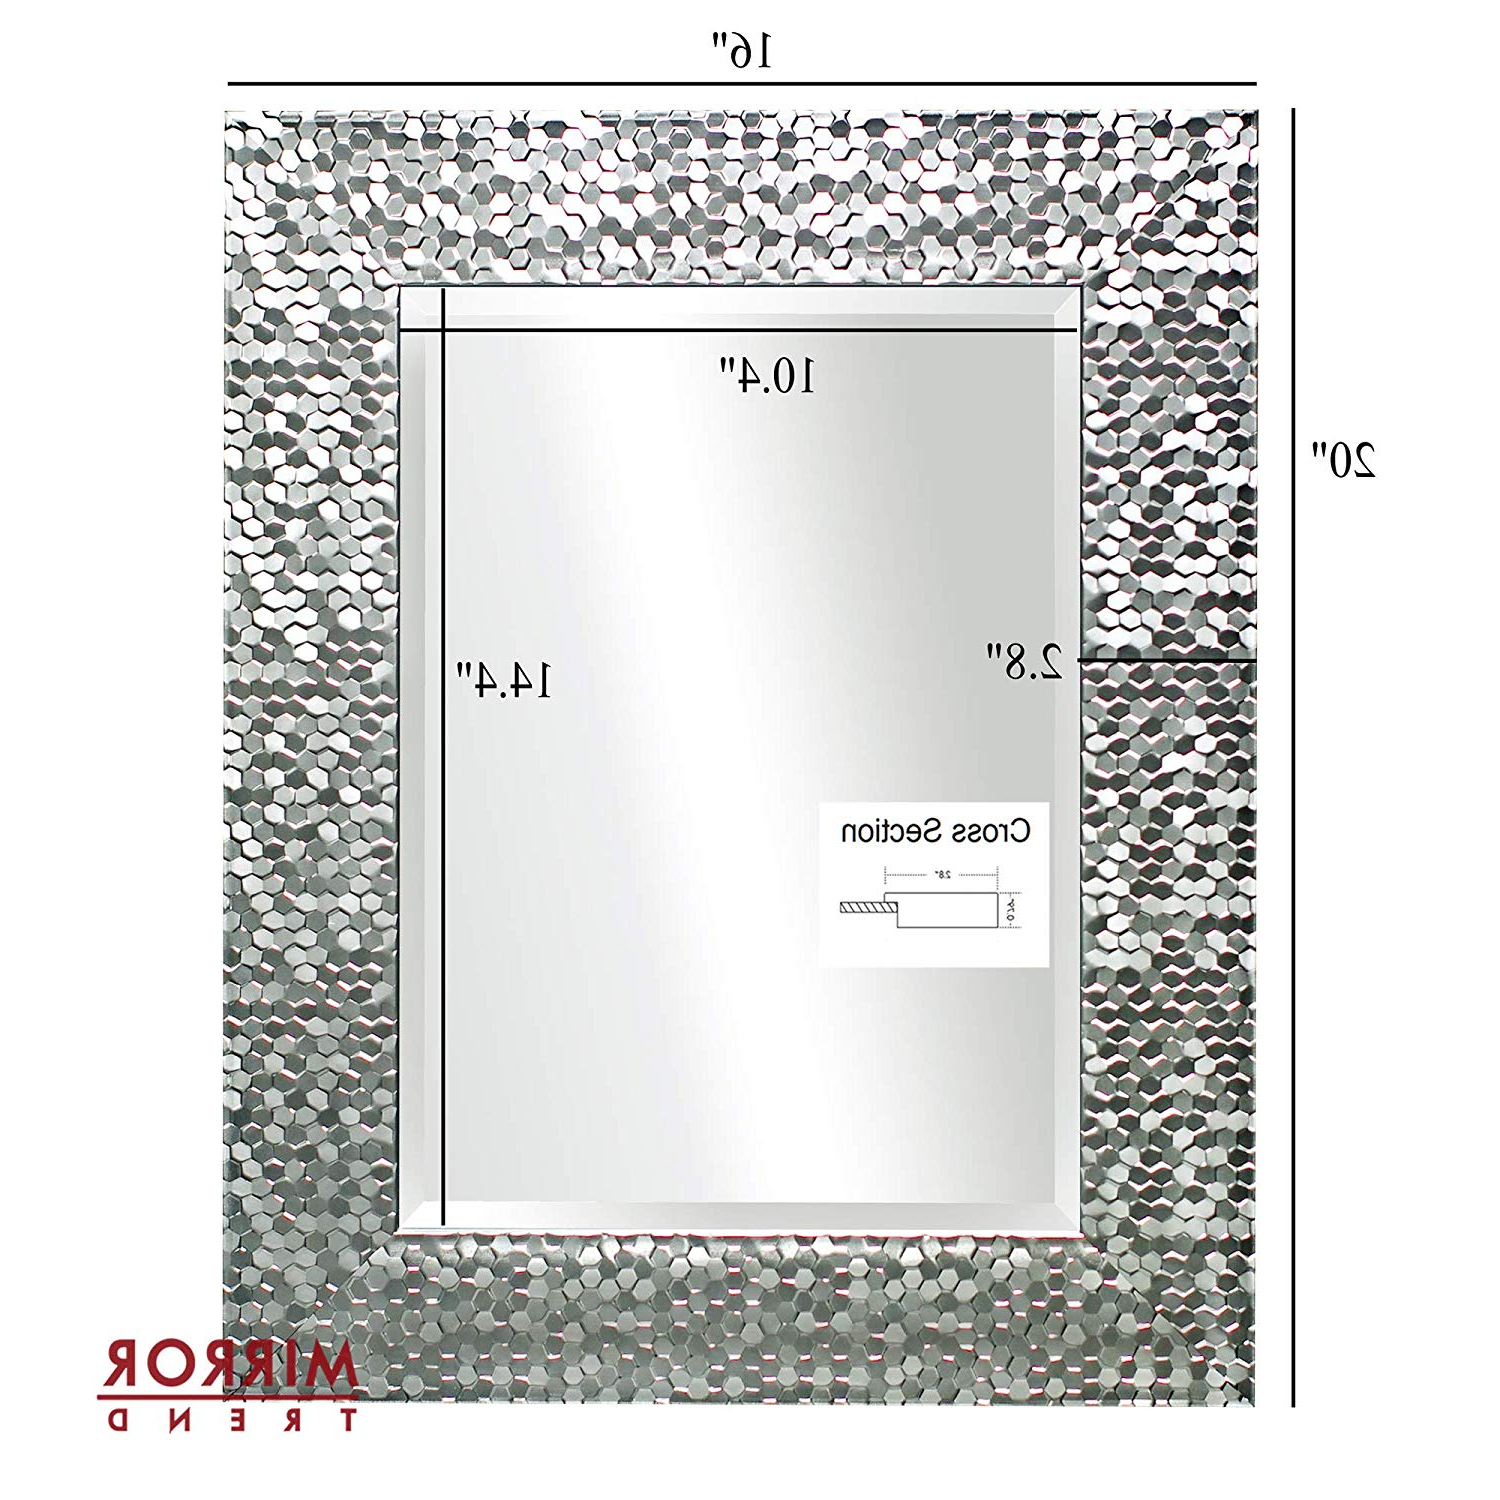 "Preferred Decorative Large Wall Mirrors Regarding Mirror Trend 16"" X 20"" Silver Beveled Mirrors For Wall Mirrors For Living  Room Large Bathroom Mirrors Wall Mounted Mosaic Design Mirror For Wall (View 15 of 20)"